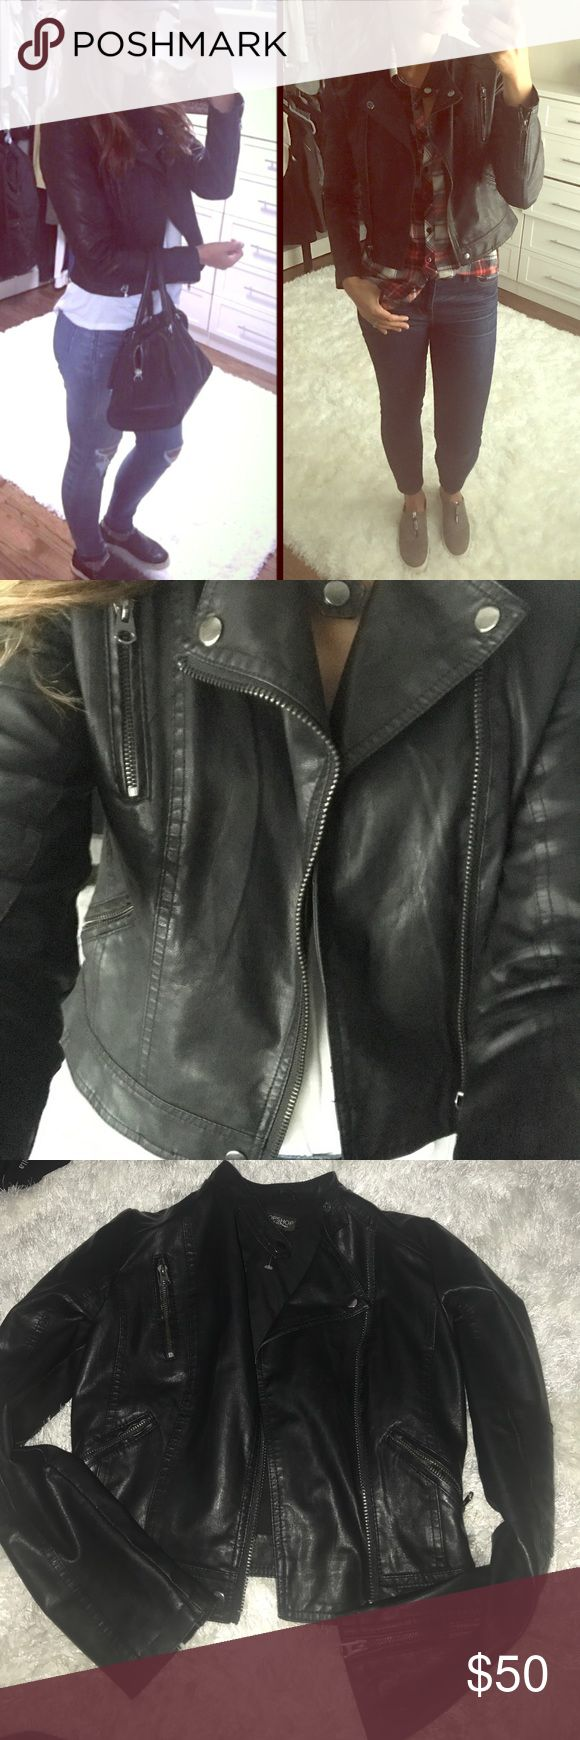 Black faux moto leather jacket Black faux leather jacket- almost new I bought this a size too small and ripped the tags off too soon! I've worn it once or twice for a little because it's super trendy and cute but the sleeves are a tad tight on me!! I'm 5'8 135 lbs for reference! Topshop Jackets & Coats